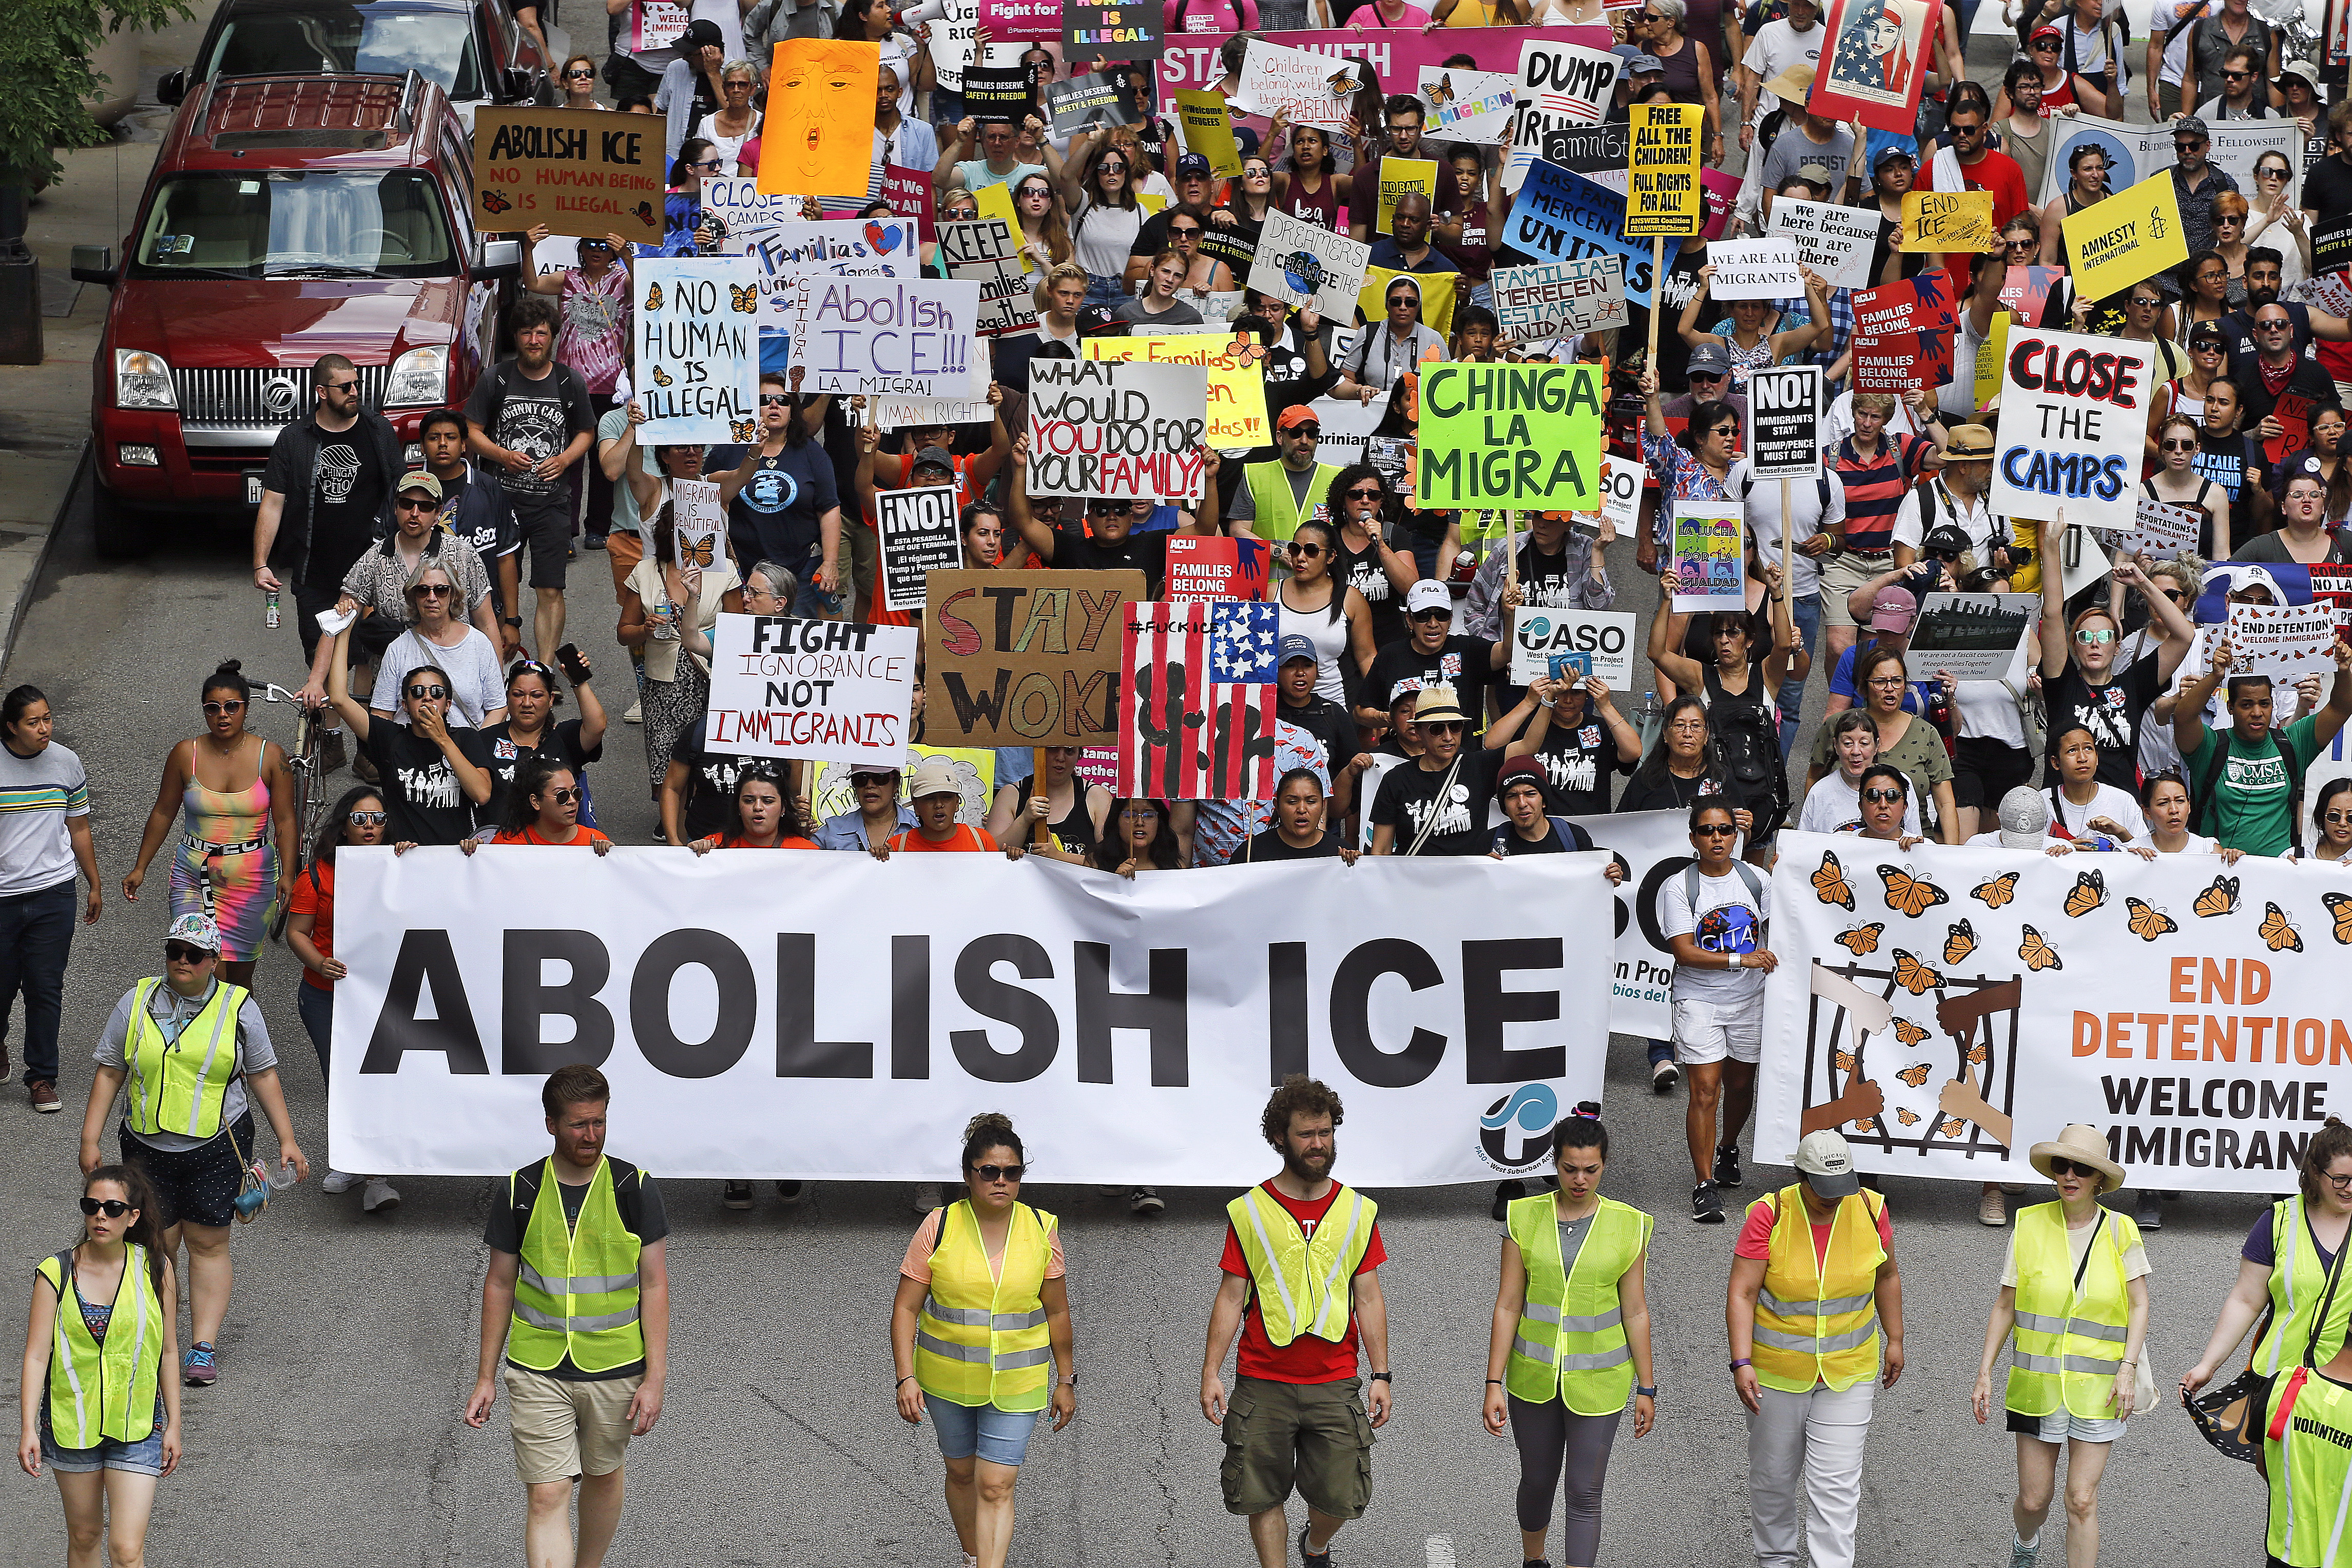 Protesters march to offices of the U.S. Immigration and Customs Enforcement on July 13, 2019 in Chicago, Ill. The rally called for an end to criminalization, detention and deportation of migrants ahead of planned ICE raids expected to the following day. (Nuccio DiNuzzo/Getty Images)